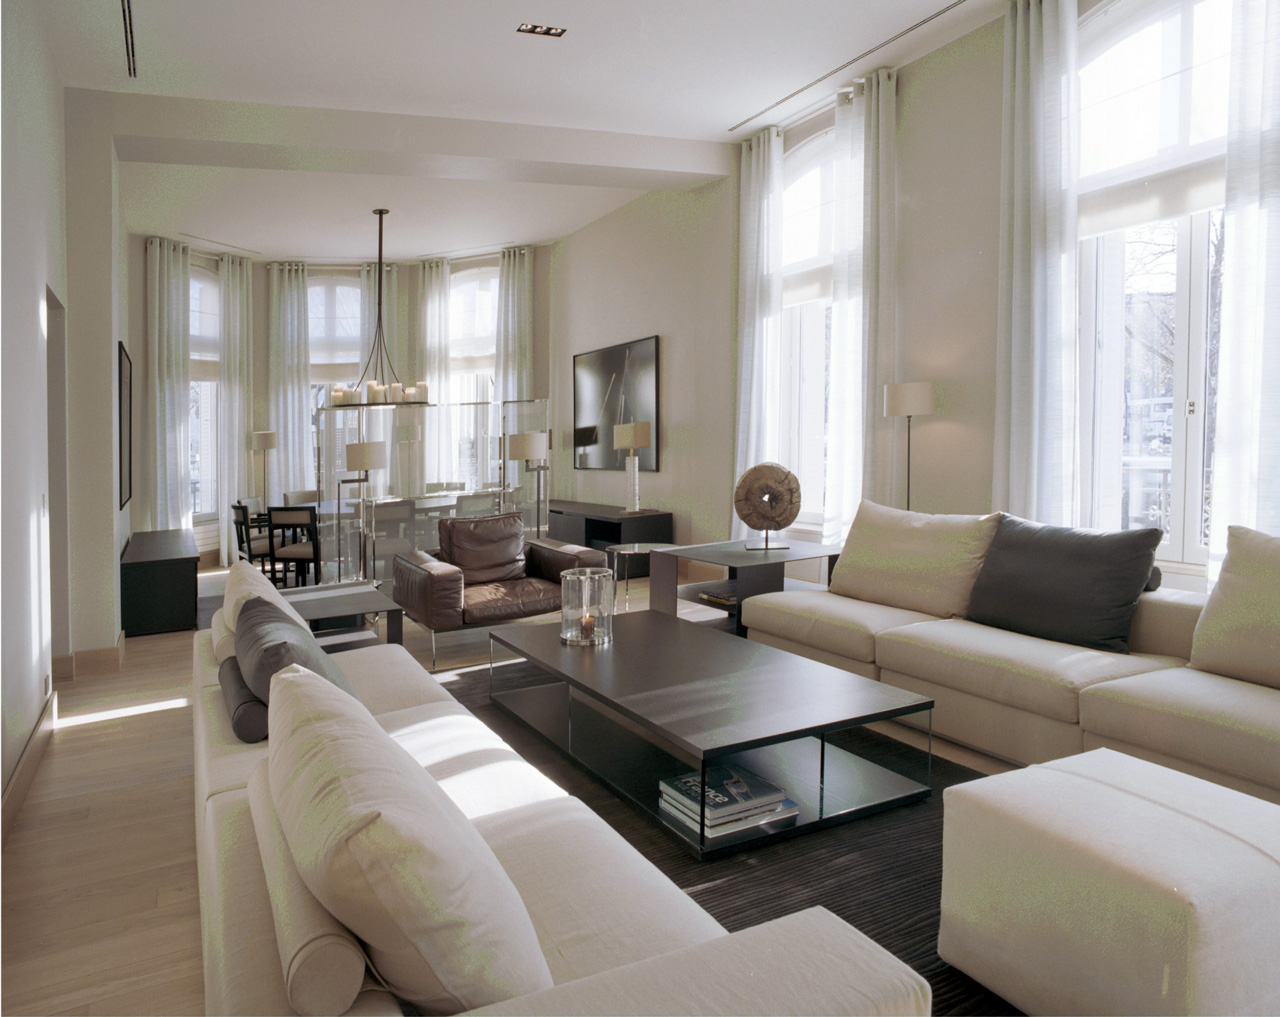 Appartements  Rserve de Paris  16e  Casol Villas France